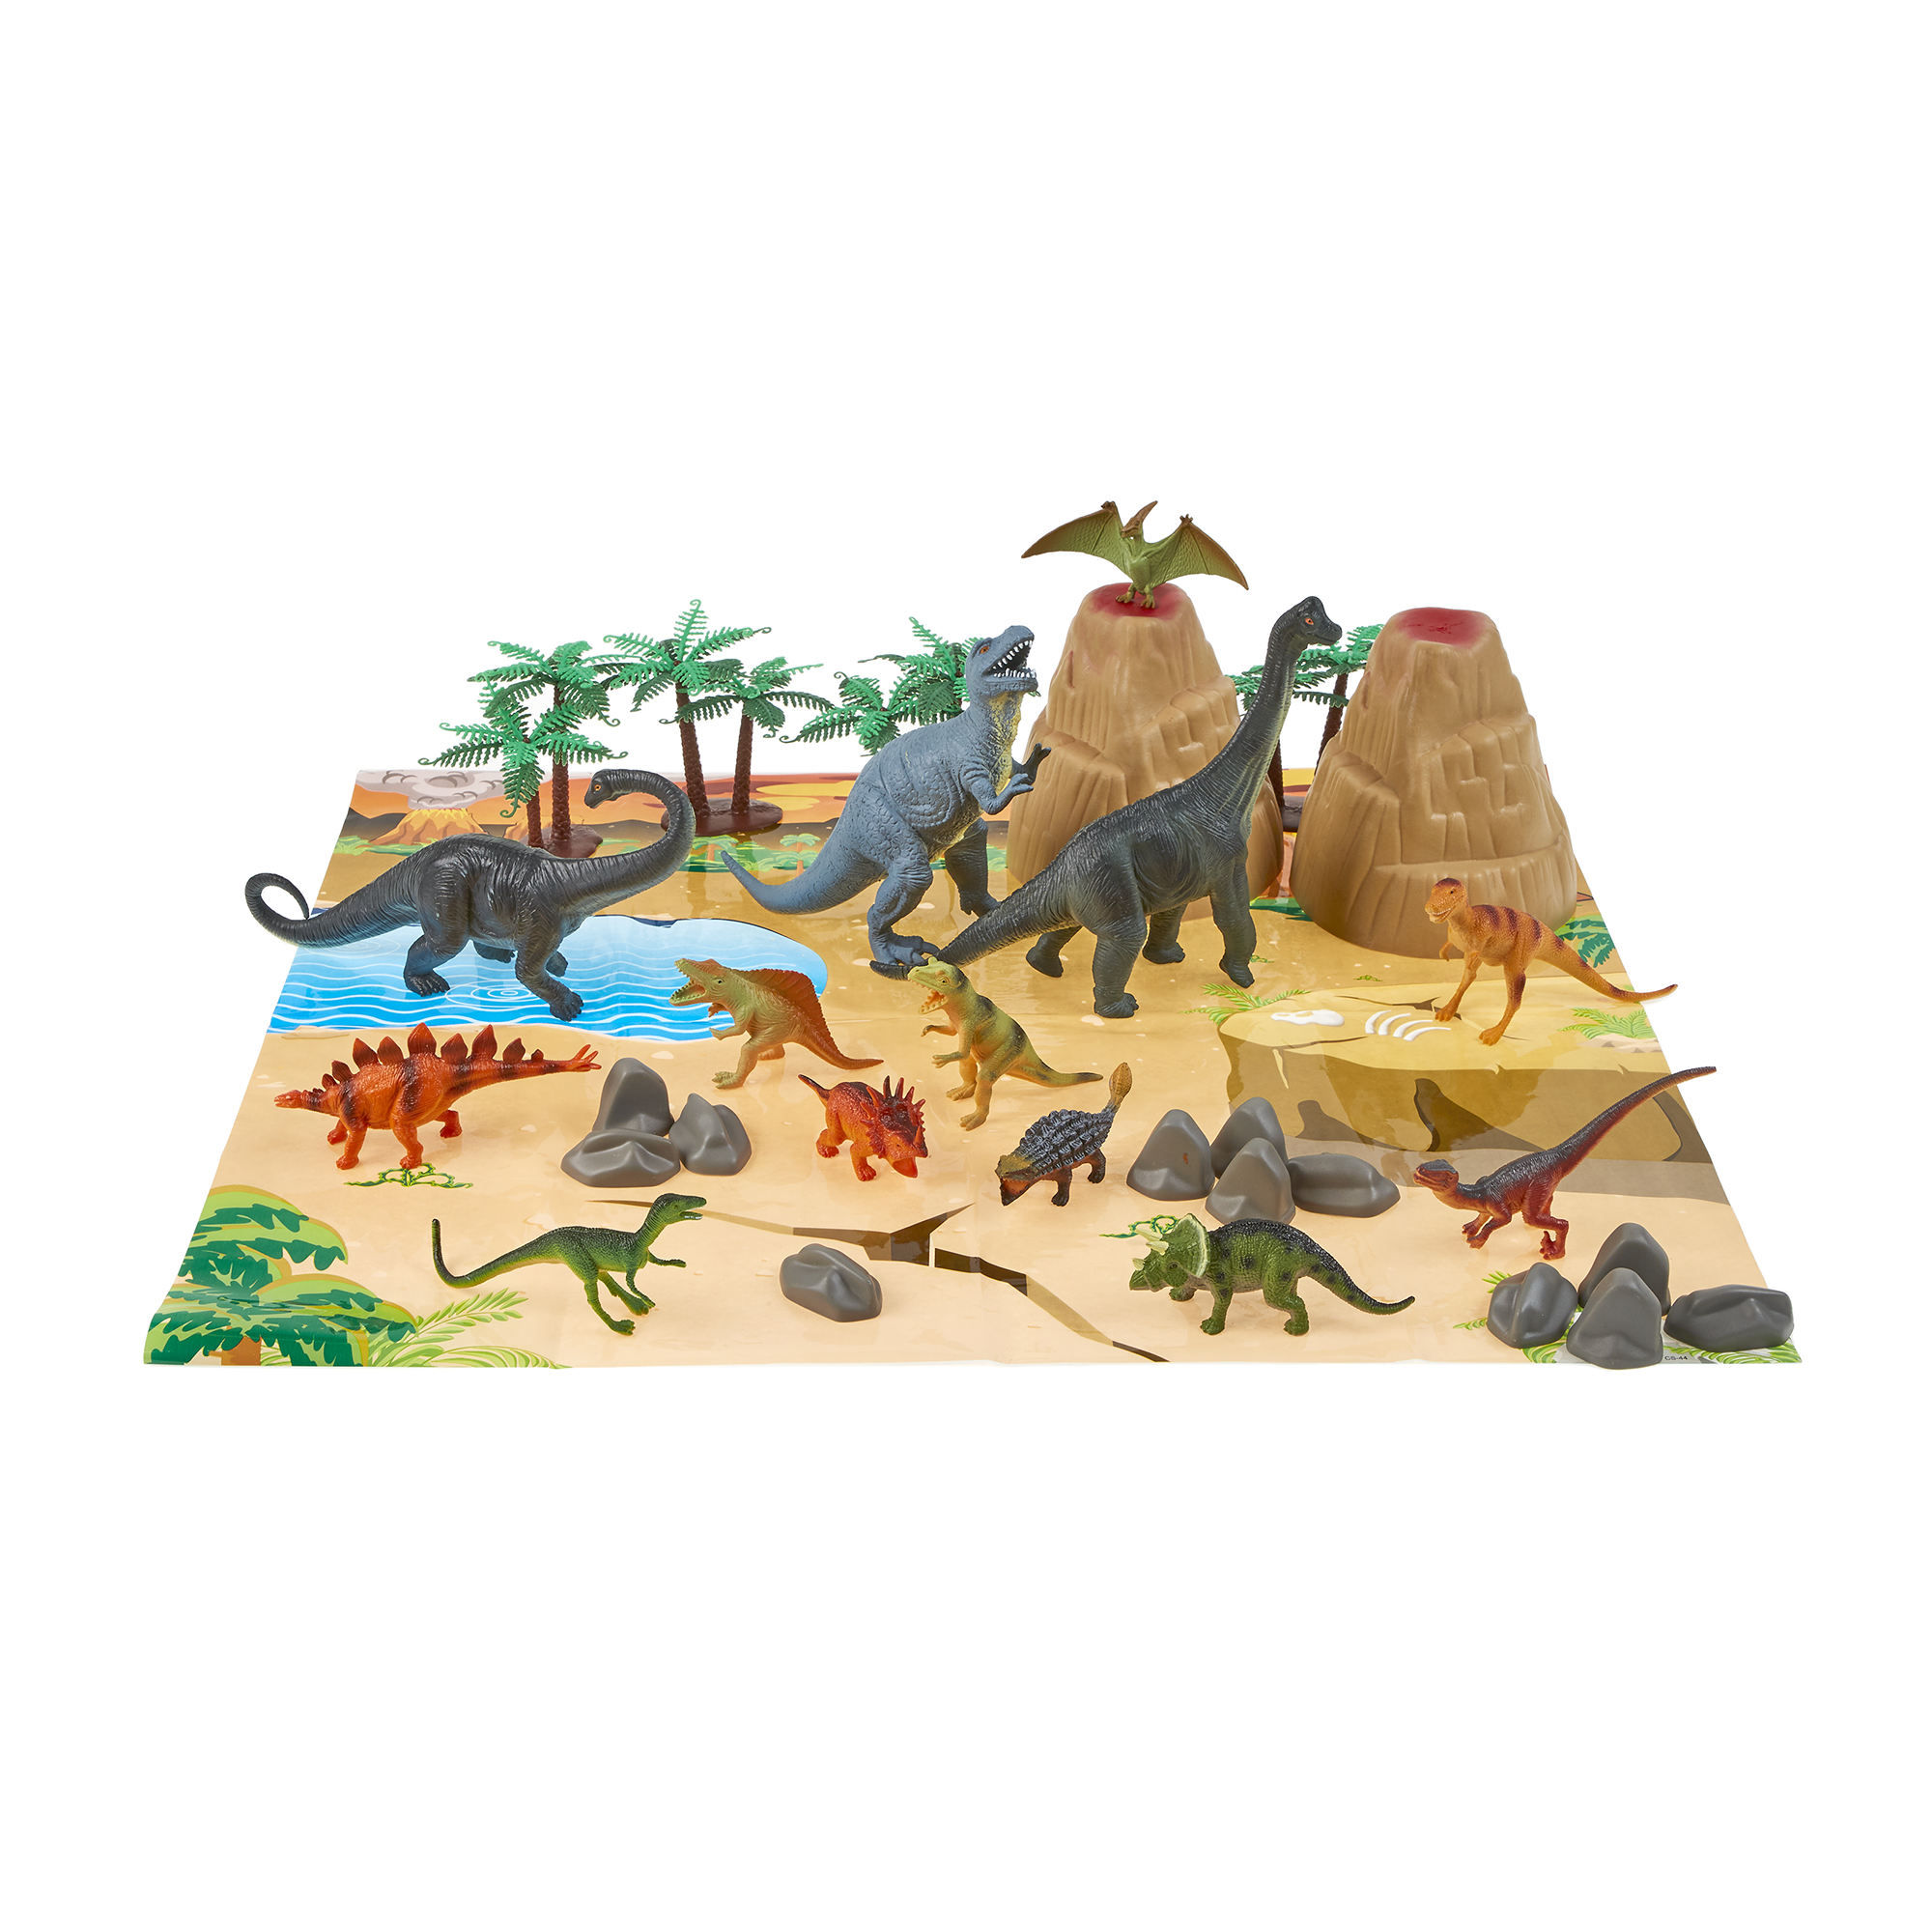 18 Toy Dinosaurs In Tub With Dinosaur Playmat Animals & Dinosaurs Action Figures